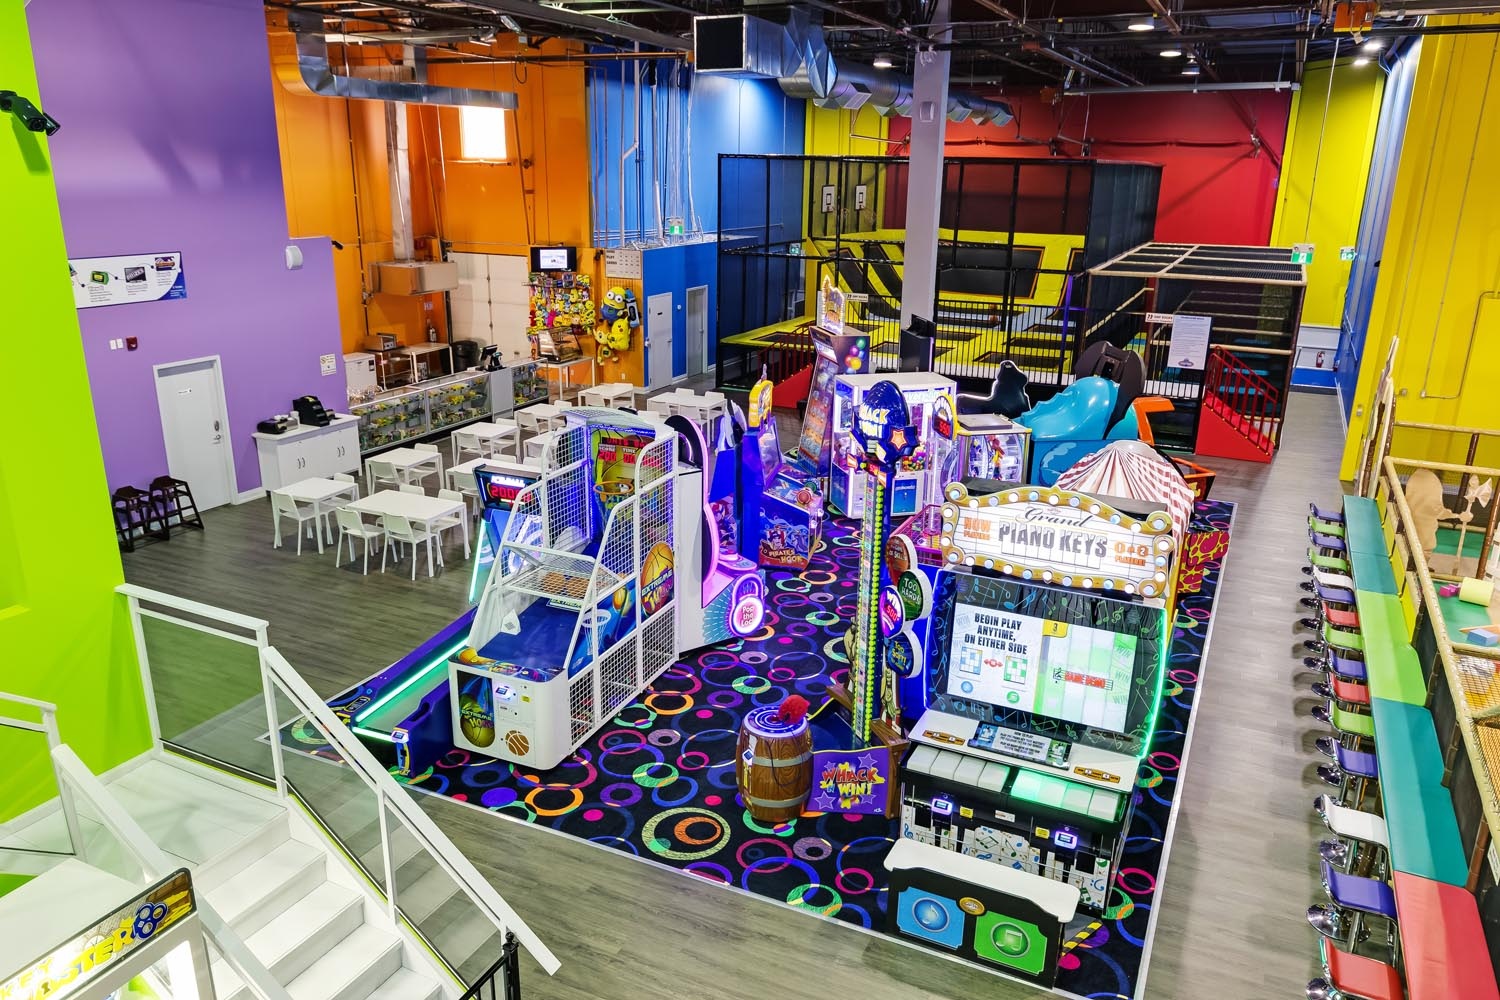 Kids Indoor Playground, Arcade Games, & Trampolines